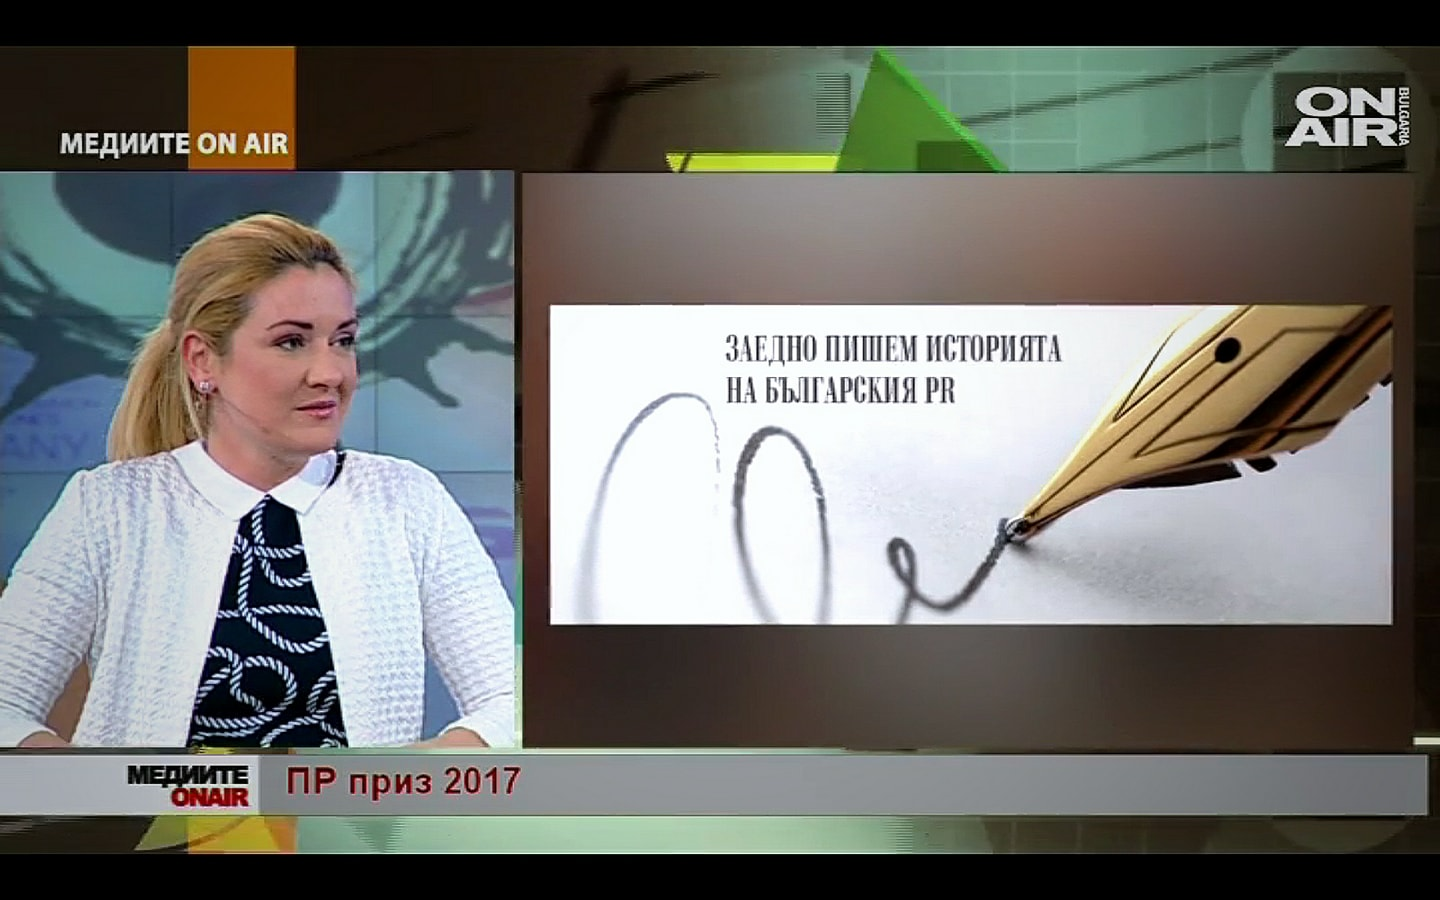 Bulgaria On Air live interview, 2016